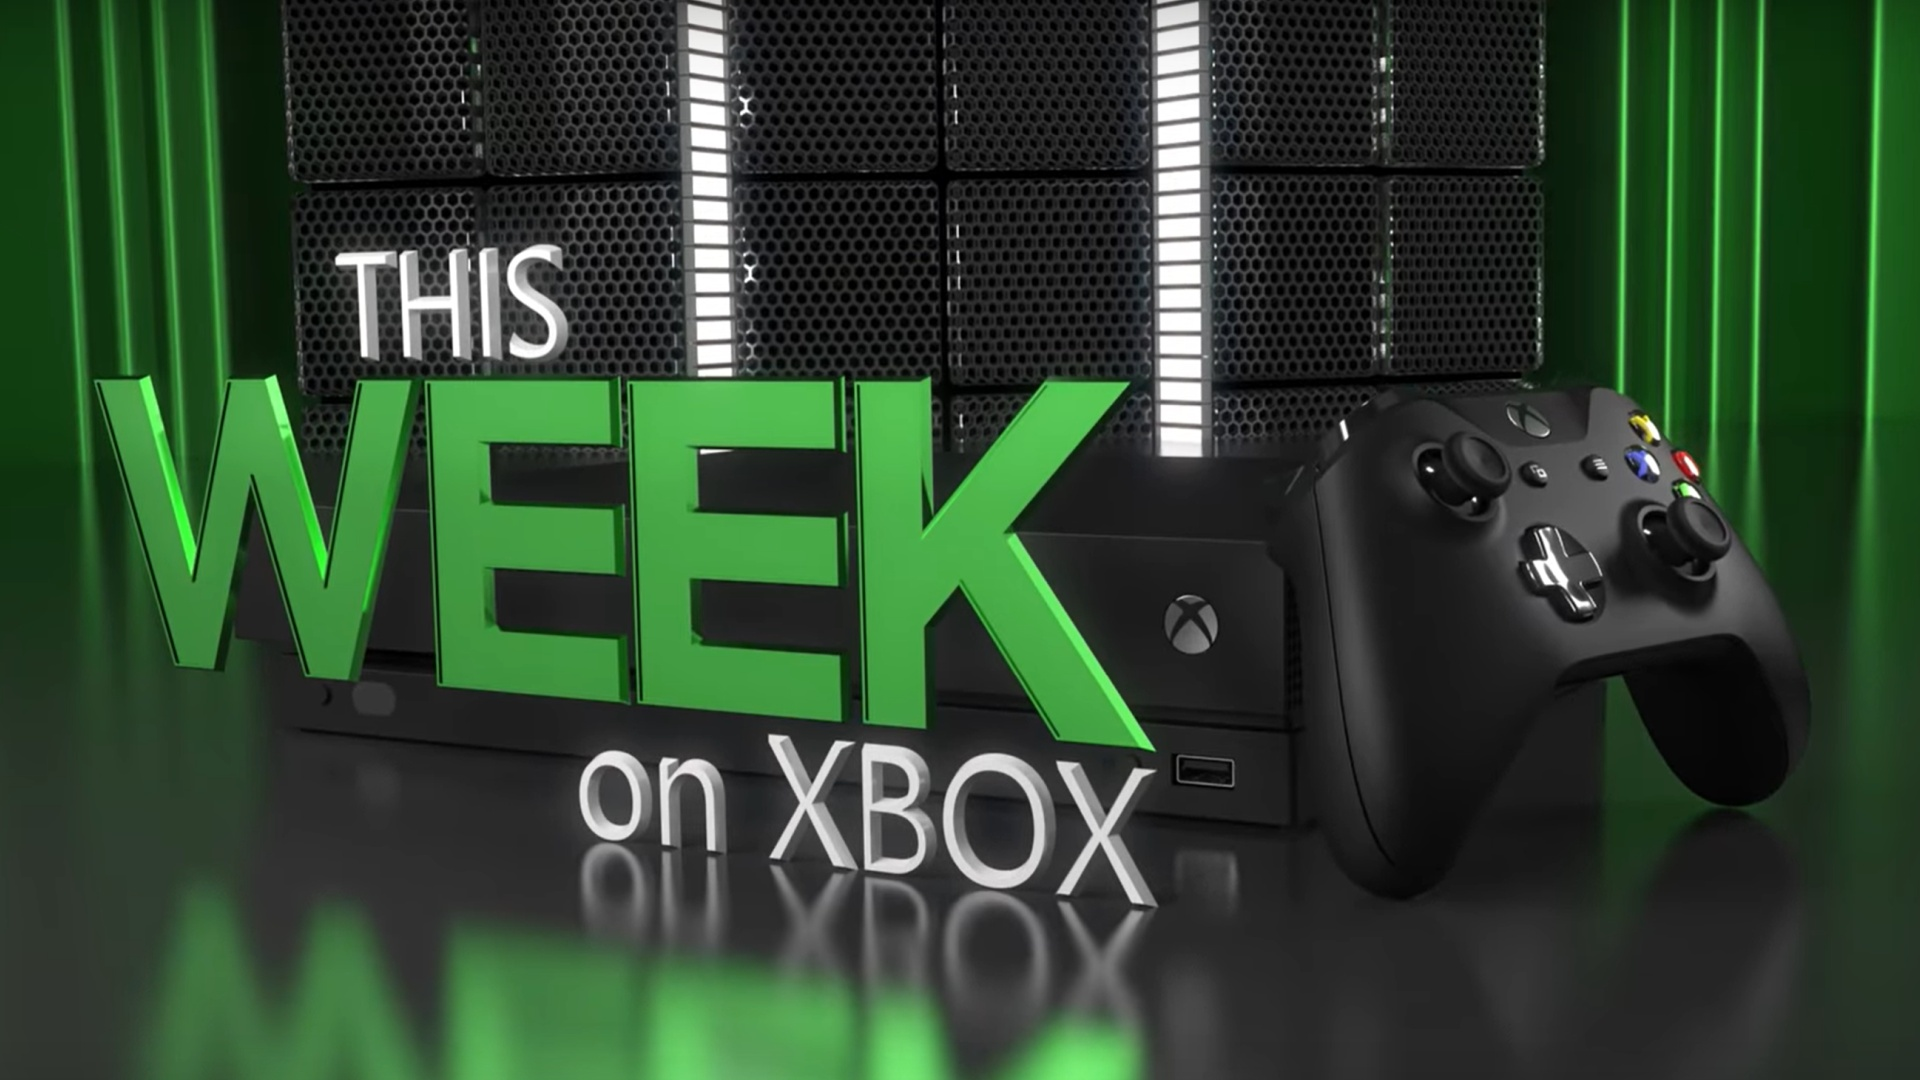 Video For This Week on Xbox: May 15, 2020